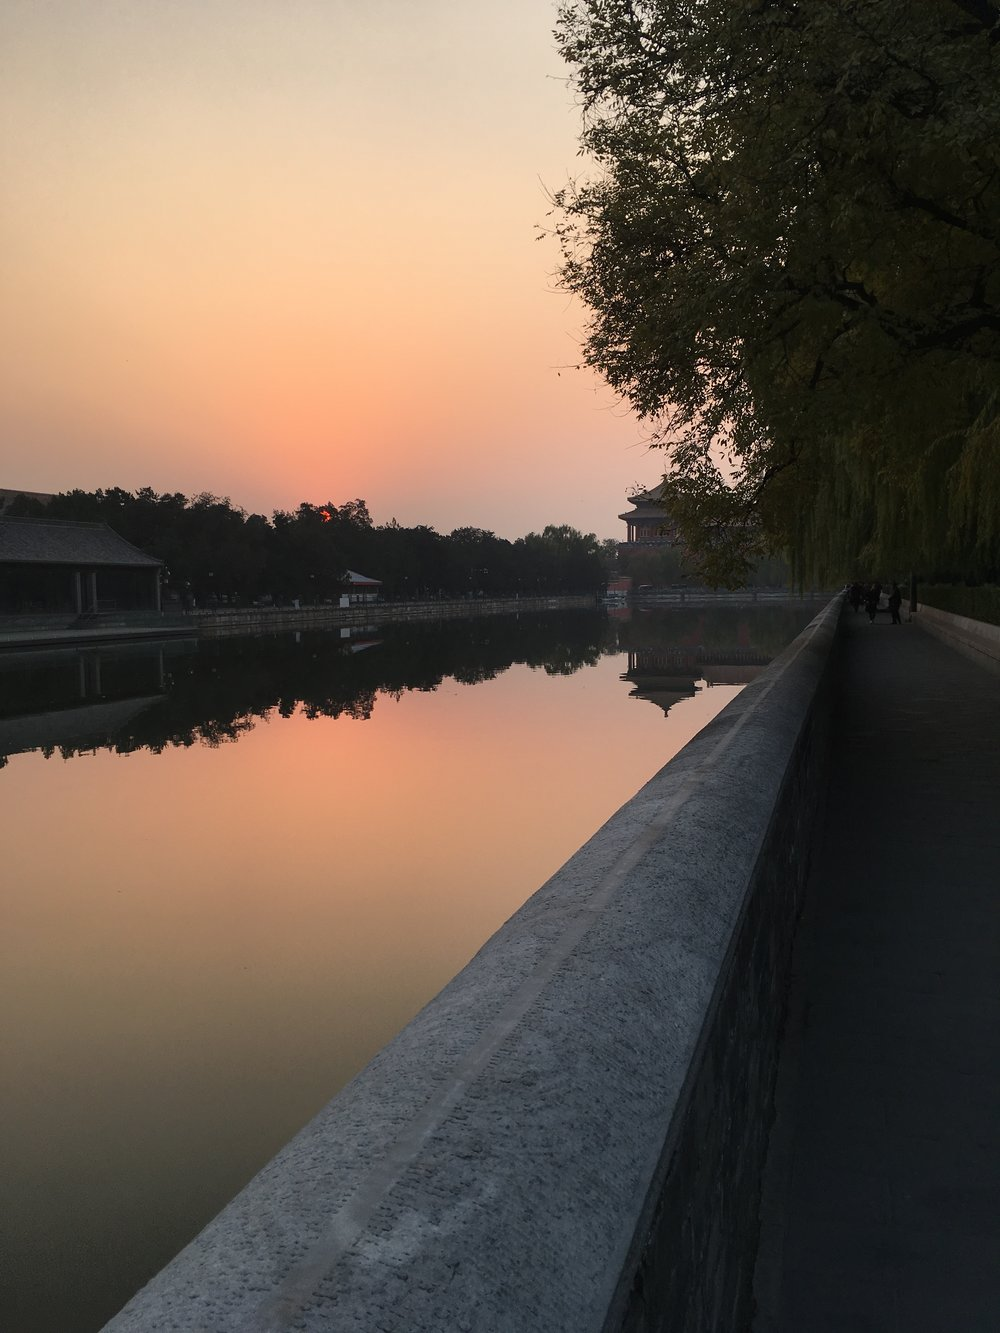 Frassaï travels to China - Sunset in the Forbidden City, Beijing